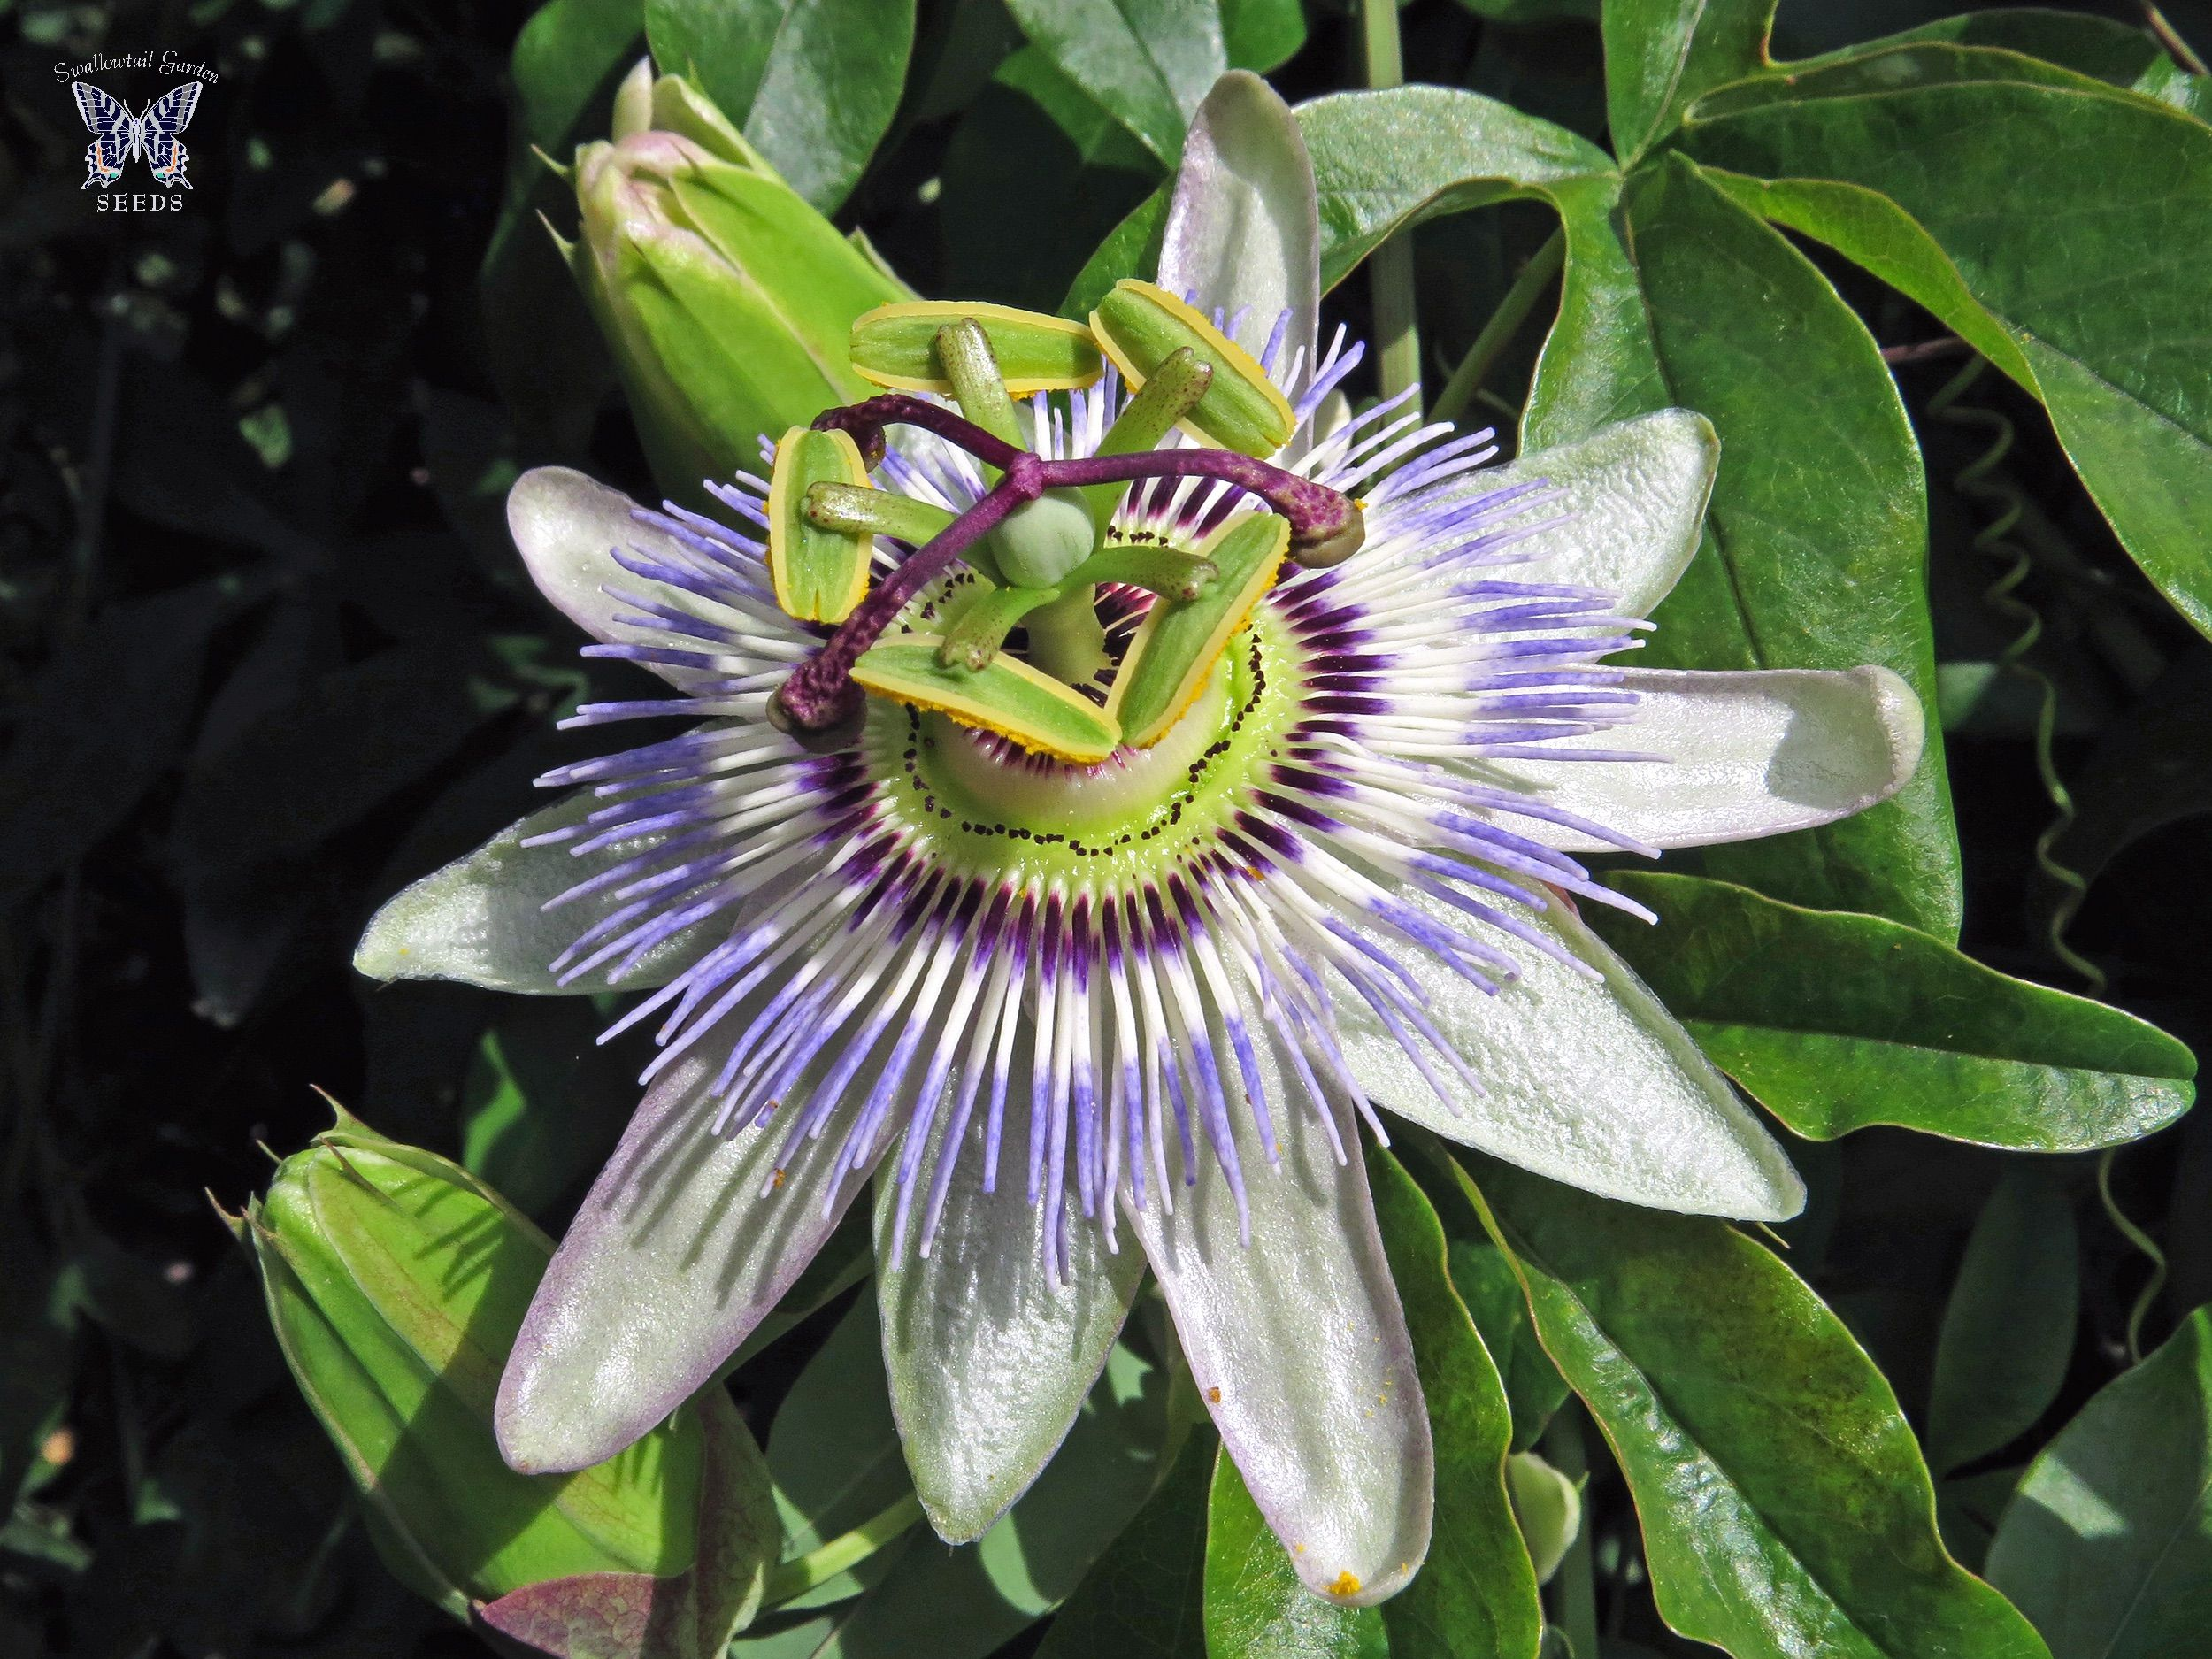 Blue Crown Passion Vine Flower Flower Seeds Flowering Vines Passion Flower